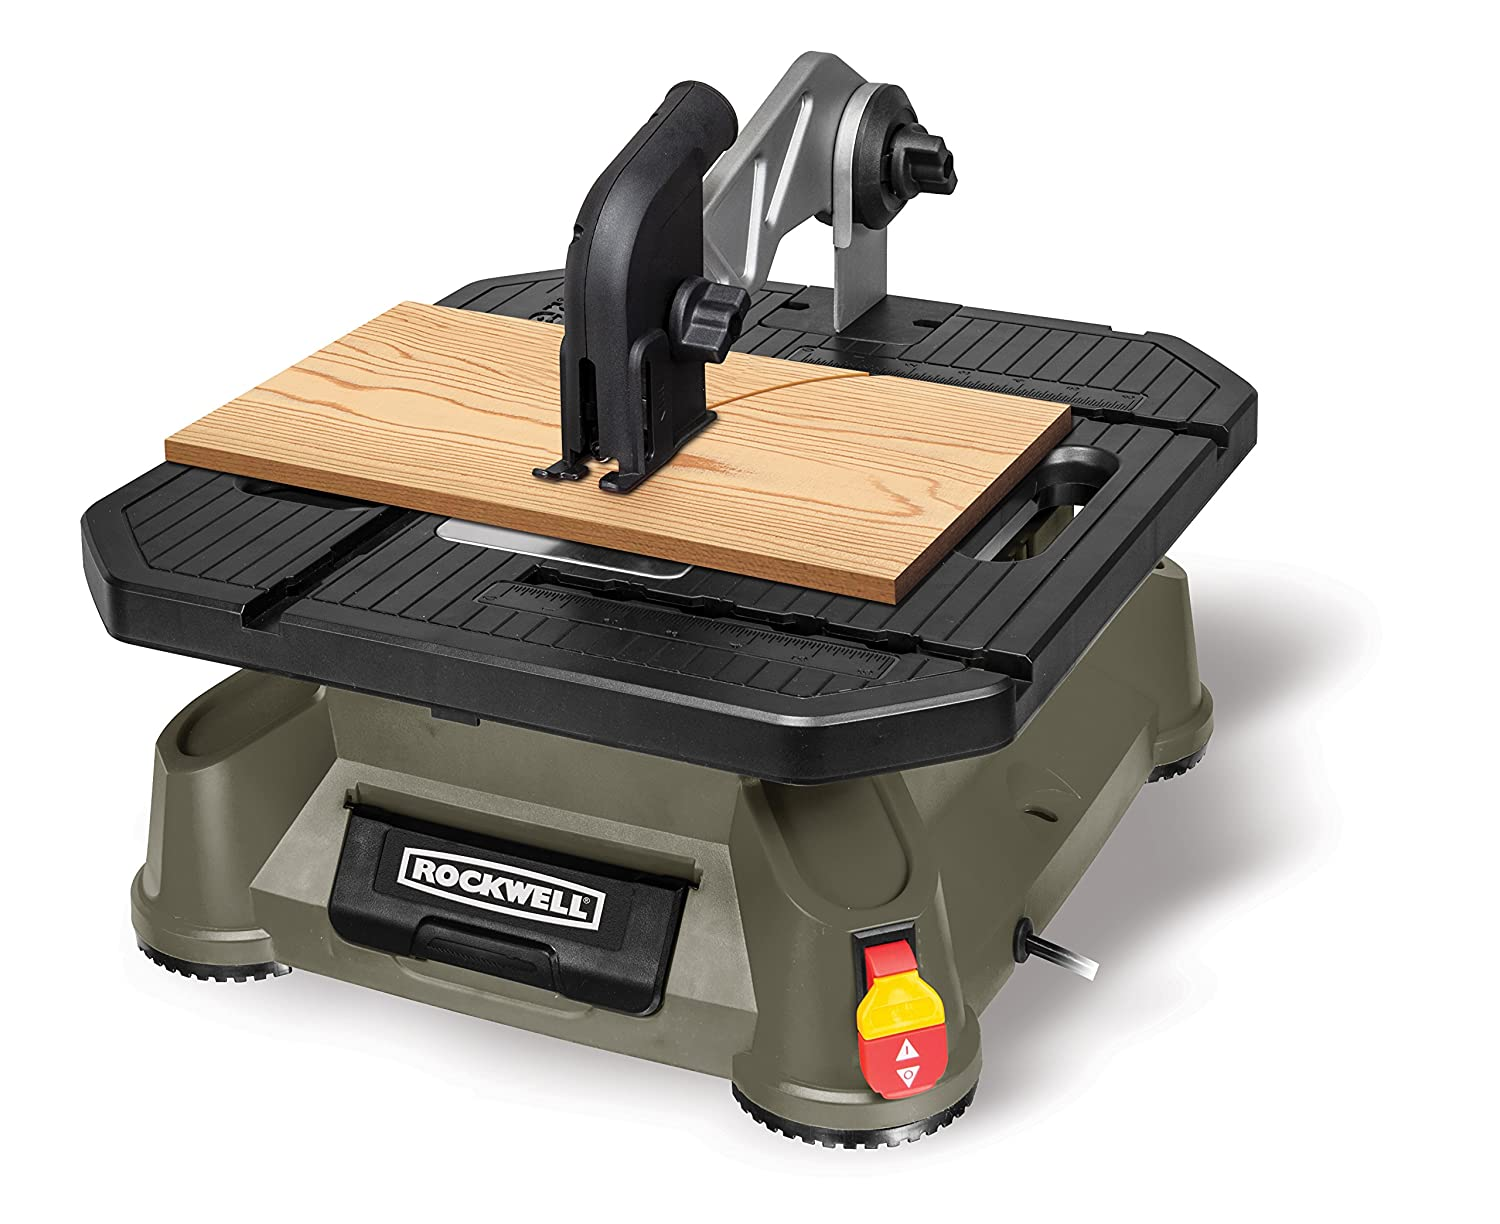 Rockwell BladeRunner X2 Portable Tabletop Saw with Steel Rip Fence, Miter Gauge, and 7 Accessories � RK7323